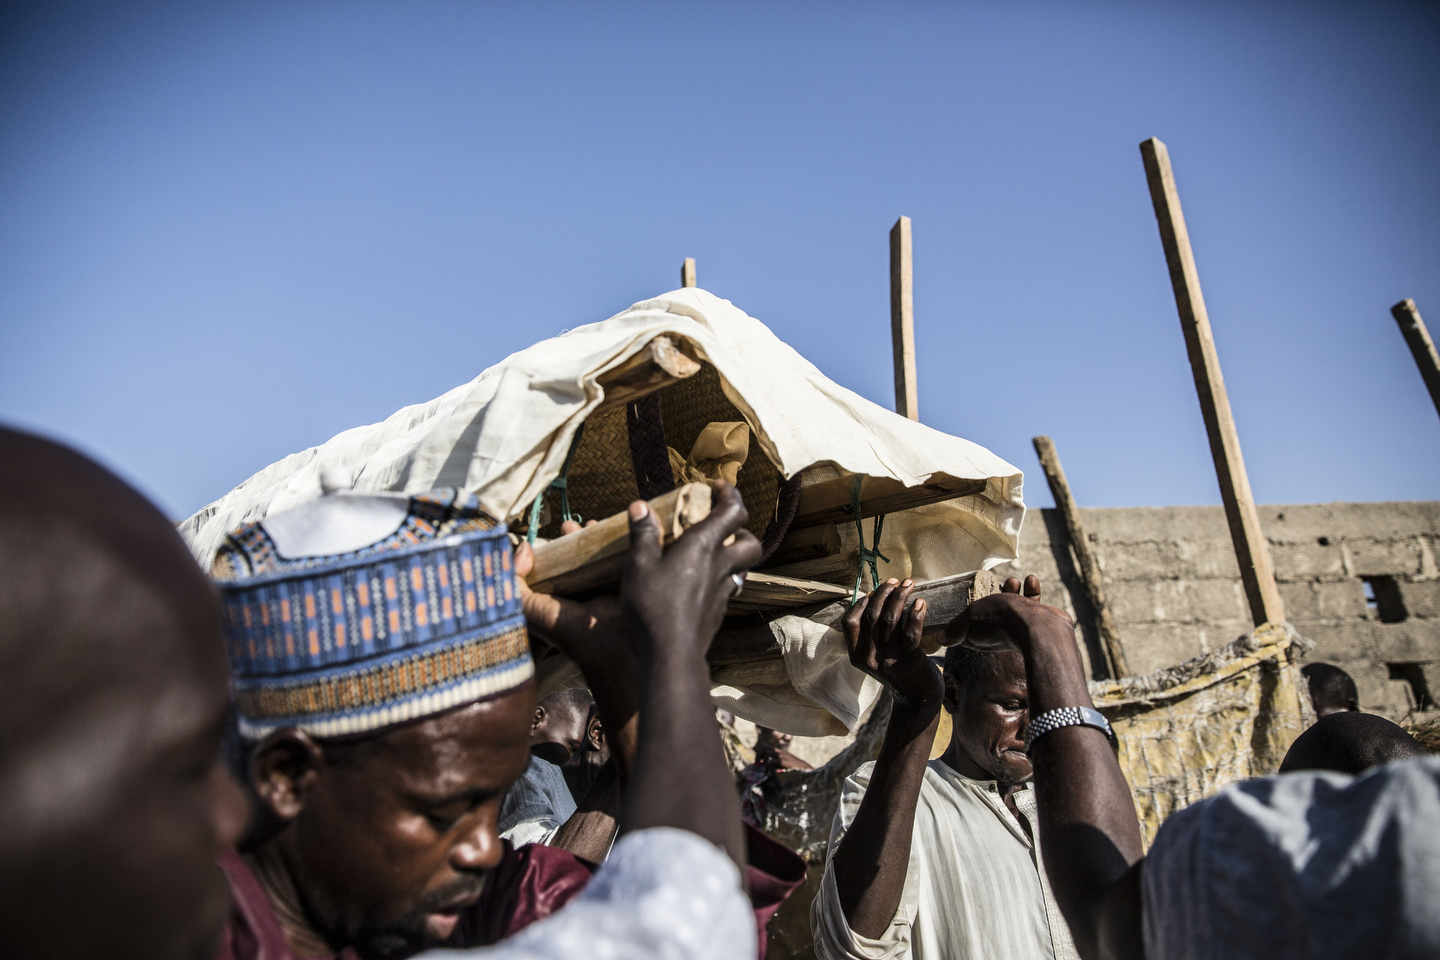 Men prepare the bodies for burial after a suicide bomb in Nigeria.